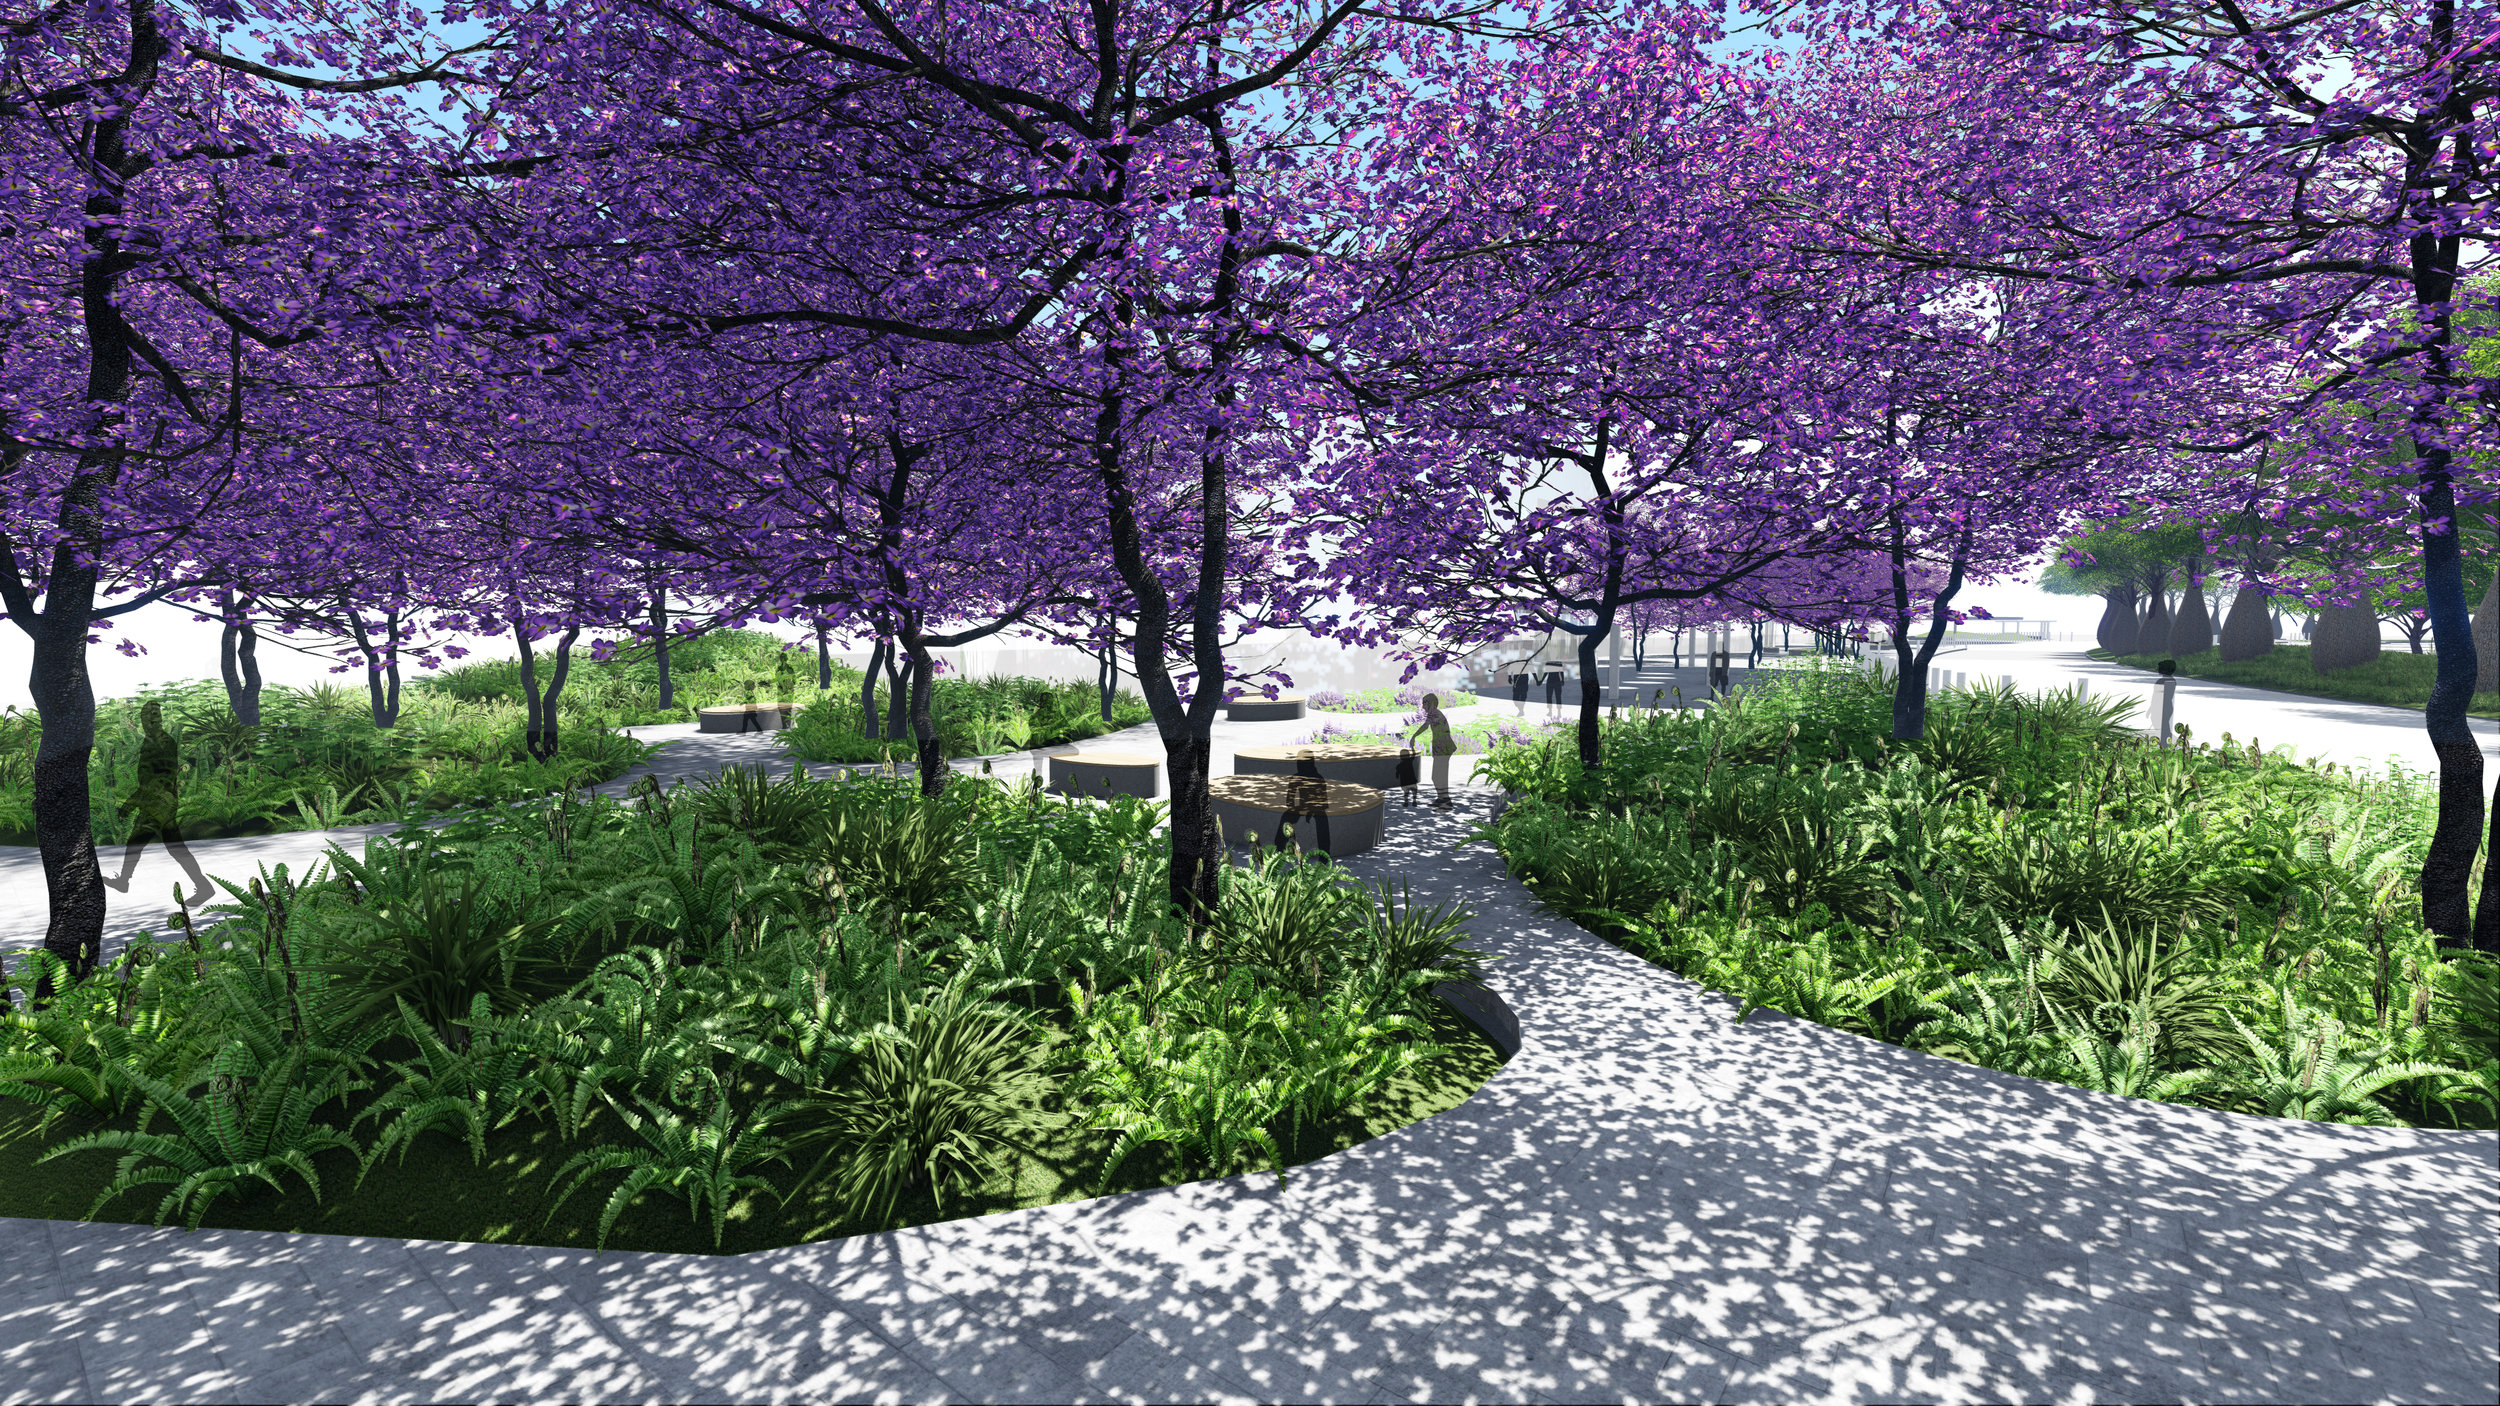 Render Mond Trees with flowers.jpg